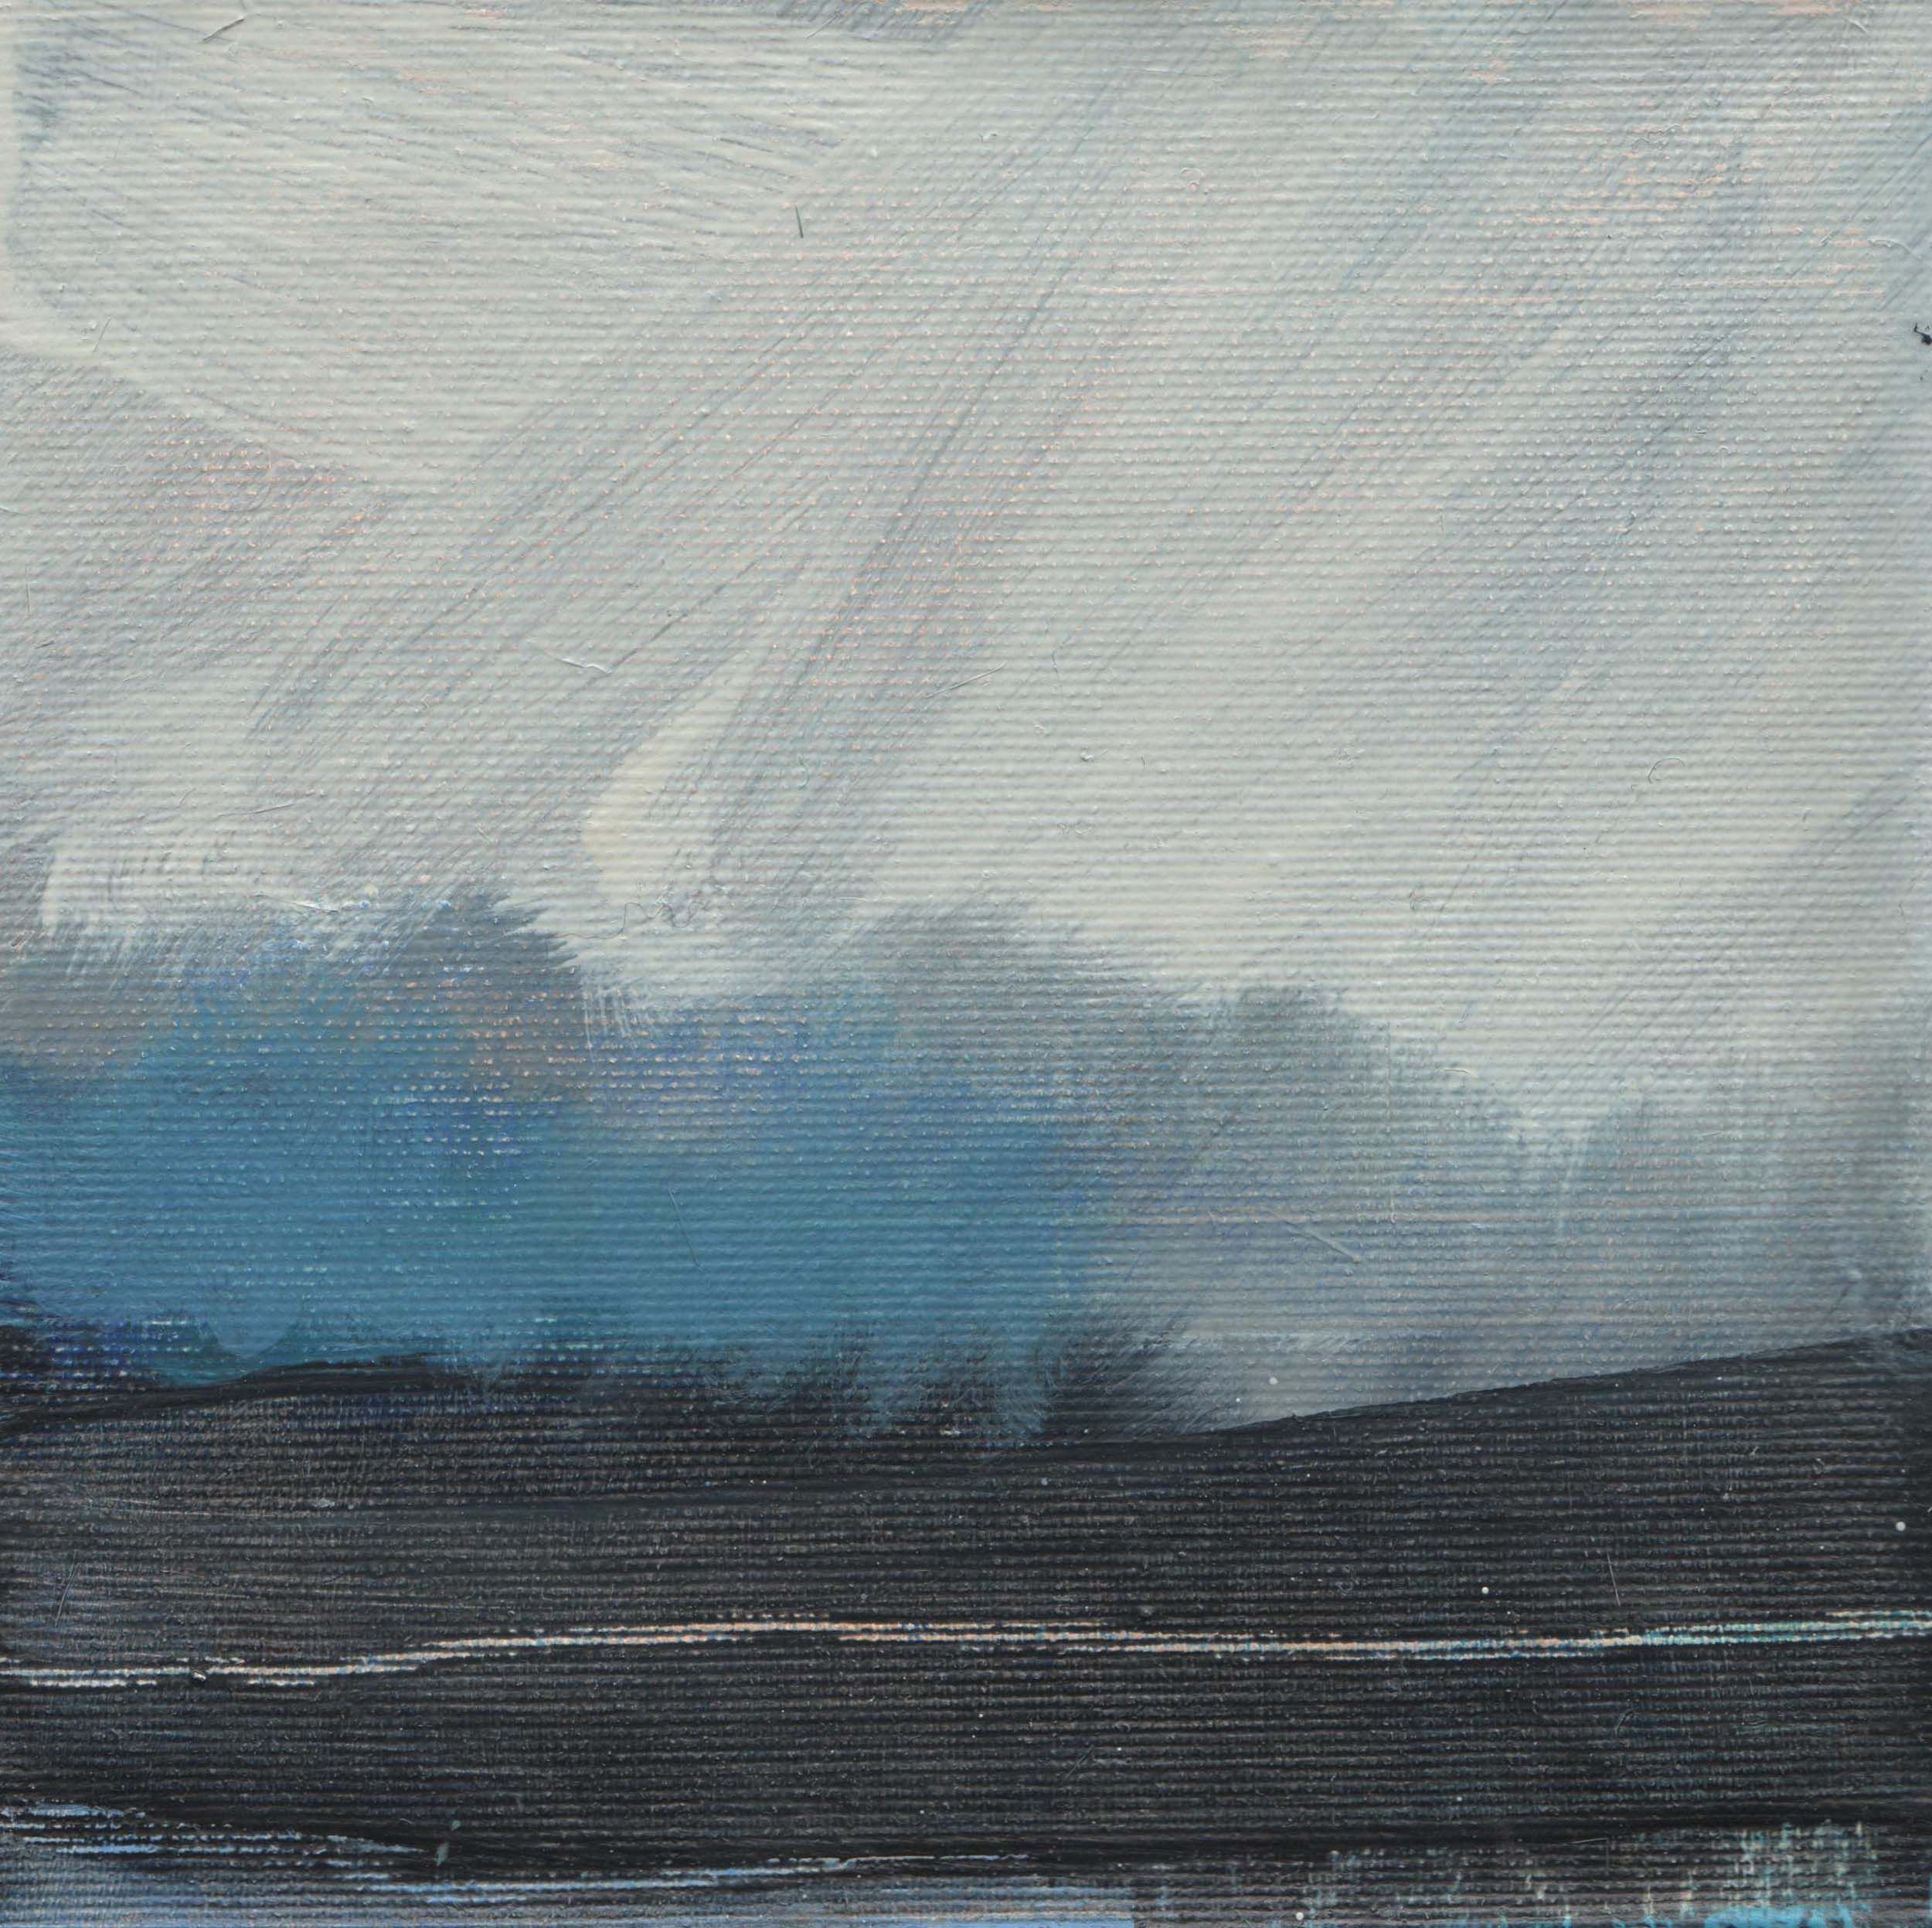 Leah Beggs 2008-Winter Breeze -Oil on Unstretched Canvas-18 x 18 cm_sml.jpg